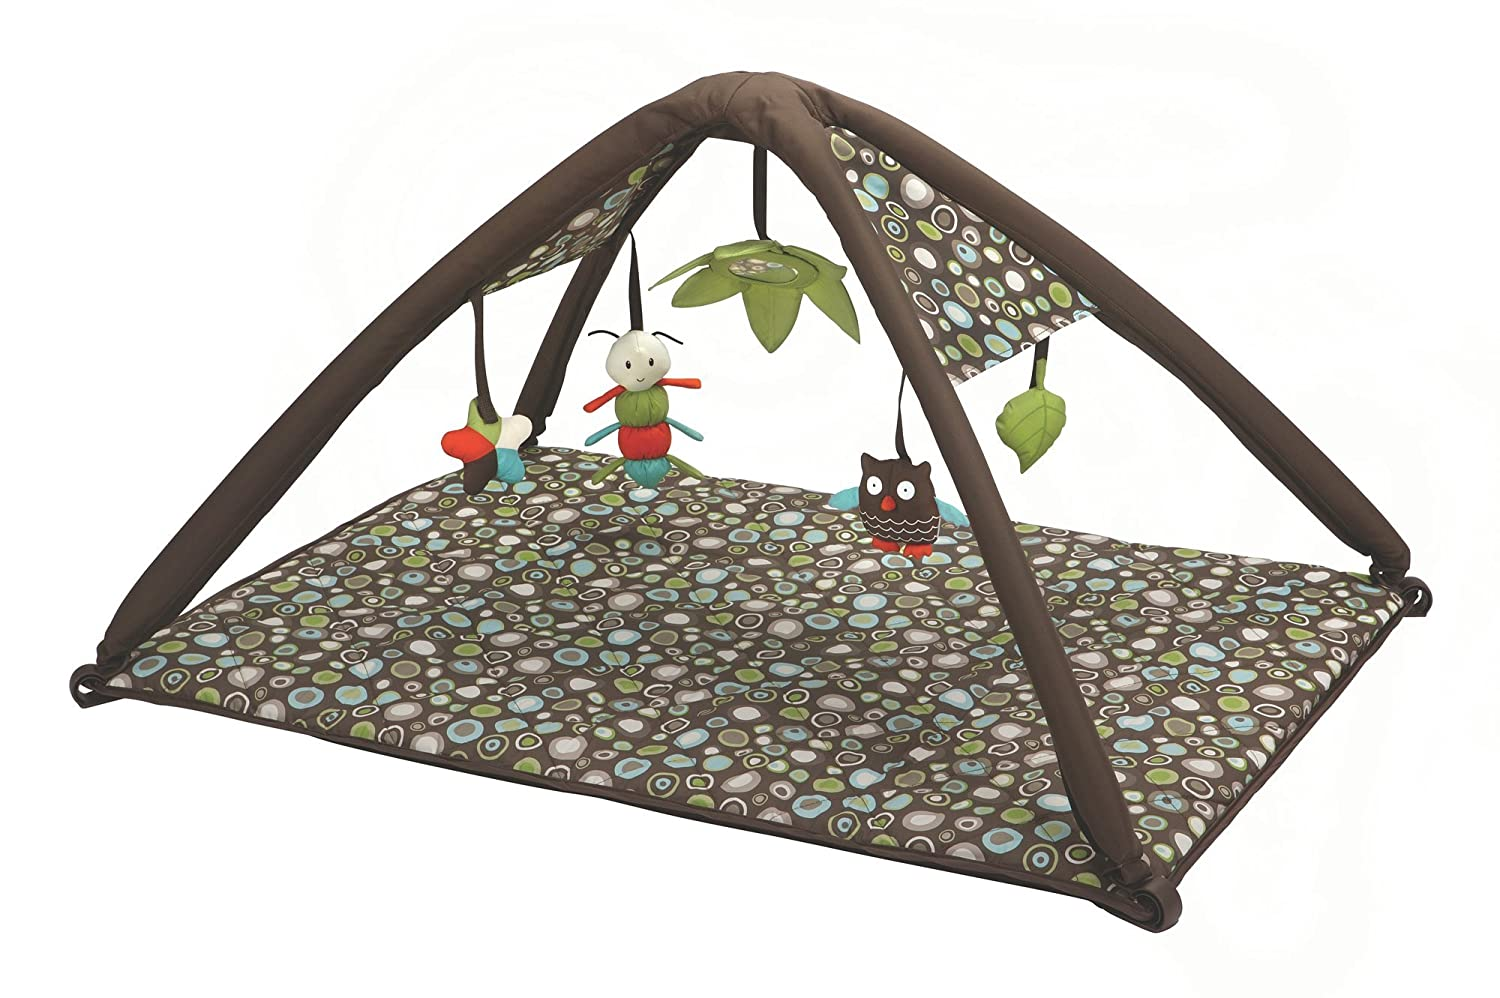 modern play mat  best playroom ideaskids room ideas images on  - amazoncom graco pack 'n play modern playard with play mat shout